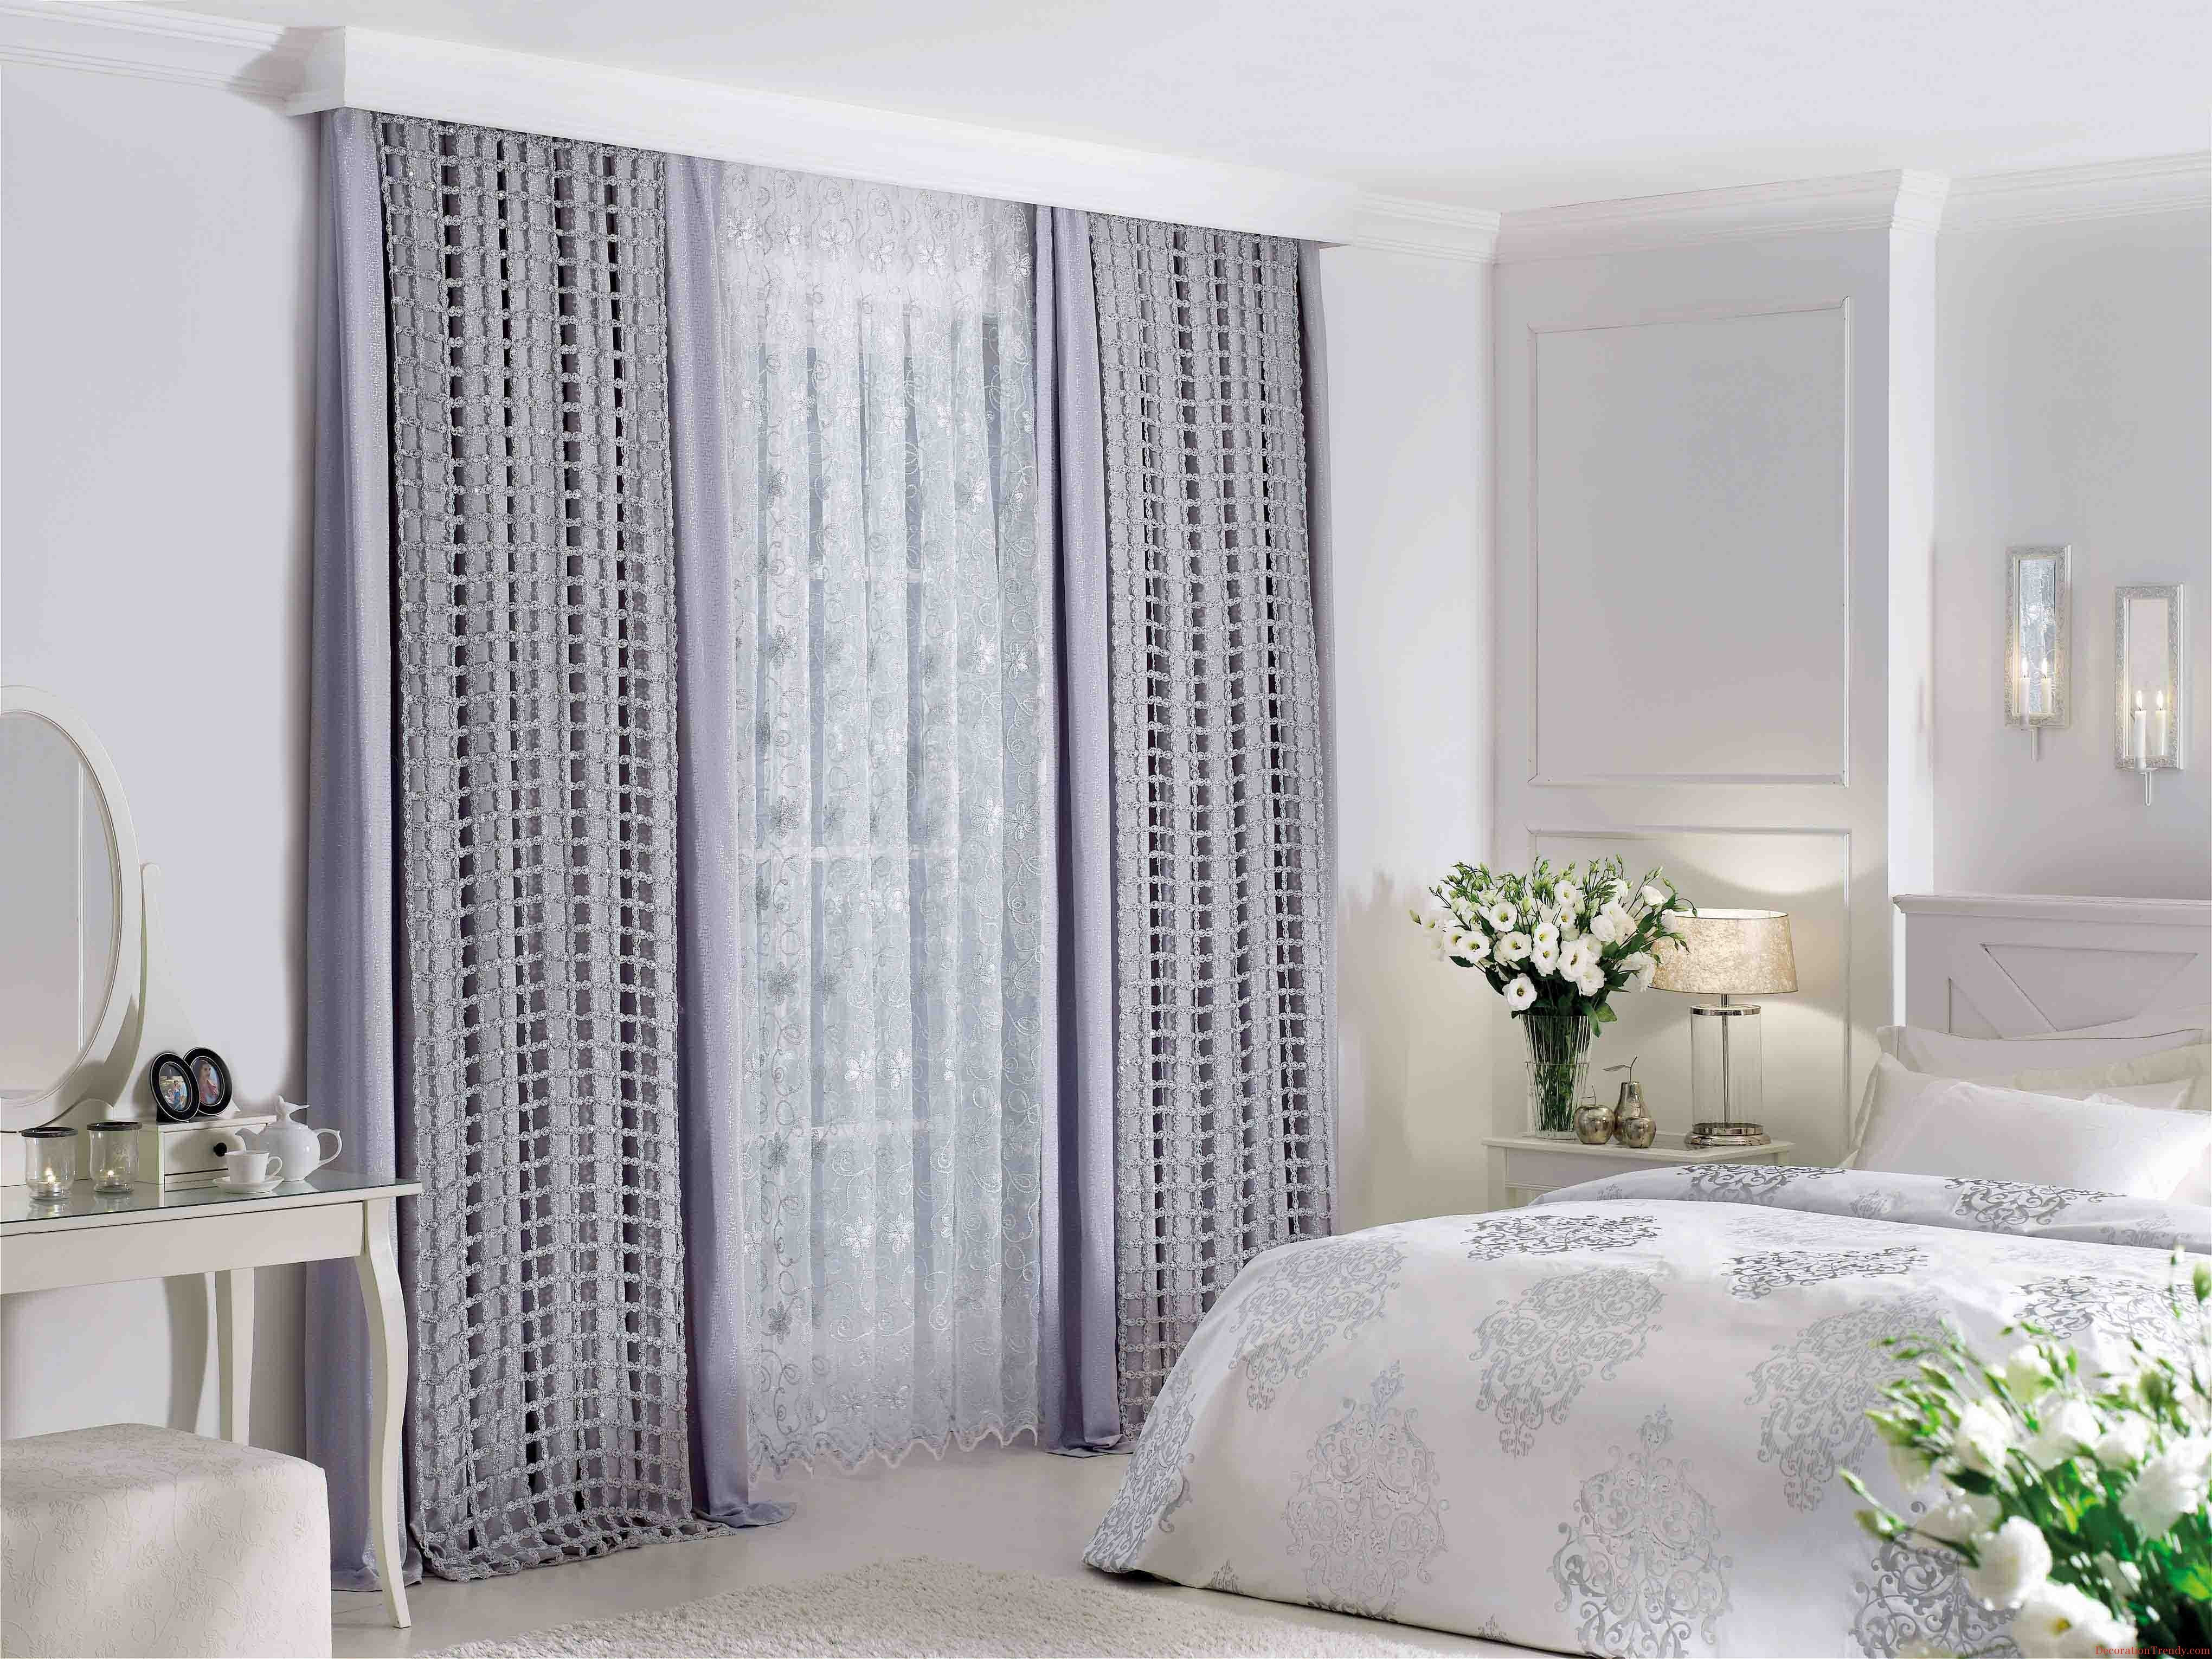 Best ideas about Curtain Idea For Bedroom . Save or Pin Awesome White Purple Glass Unique Design Interior Bedroom Now.